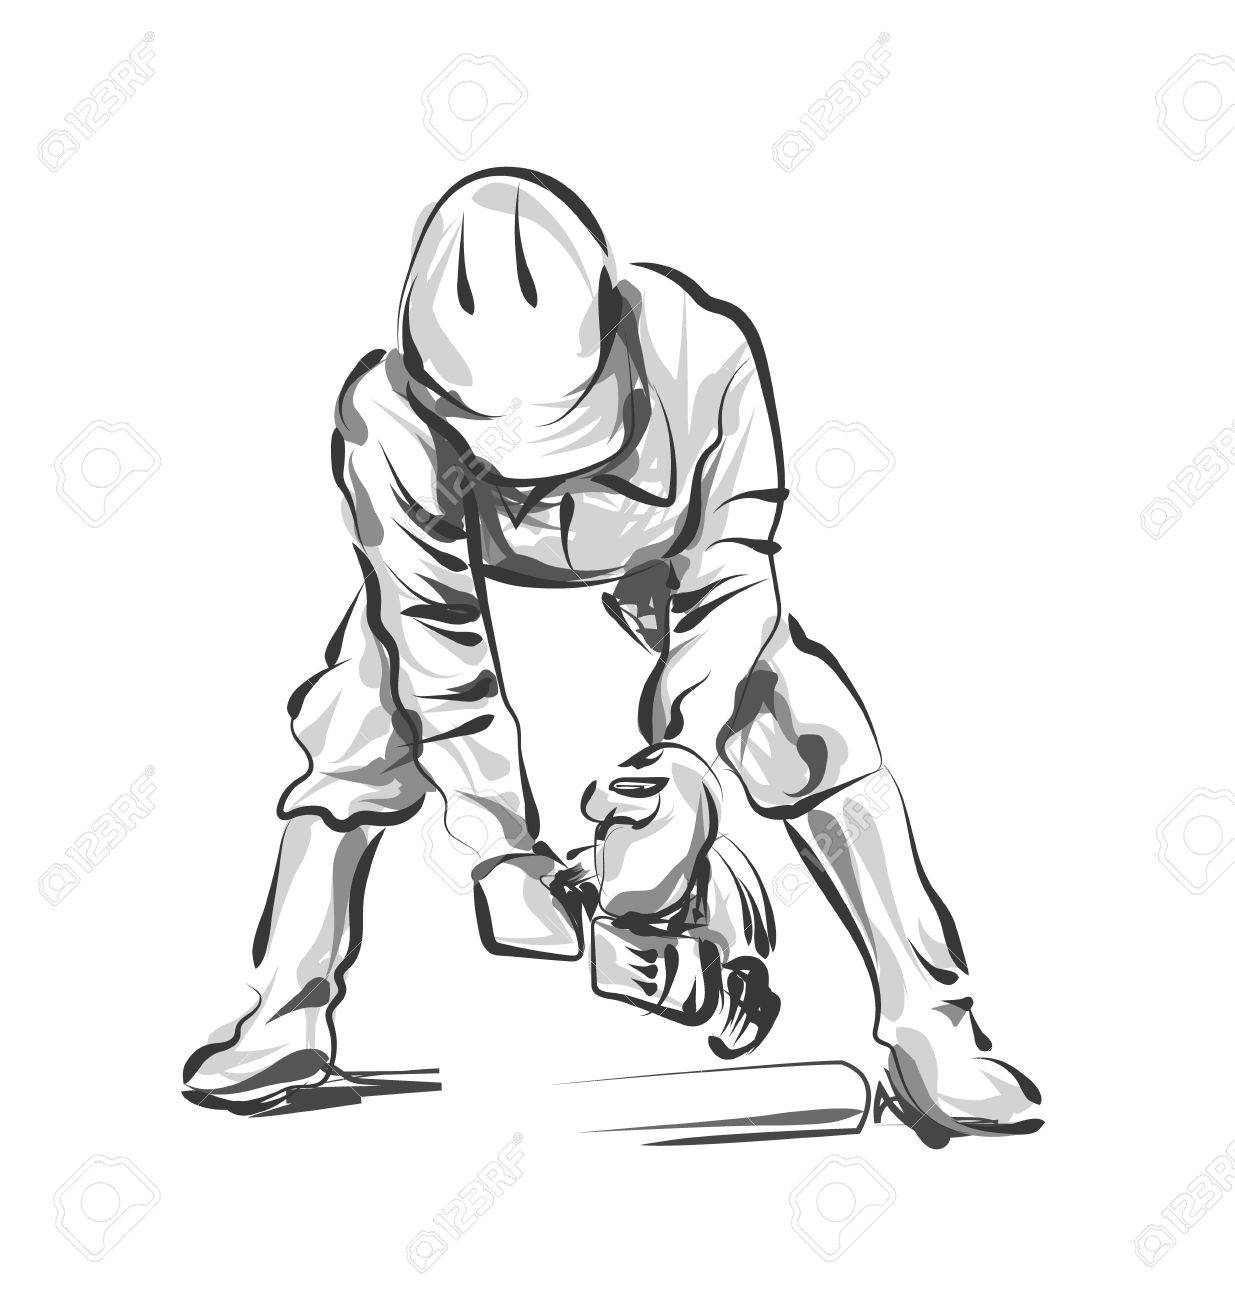 1235x1300 Vector Line Sketch Construction Worker Royalty Free Cliparts